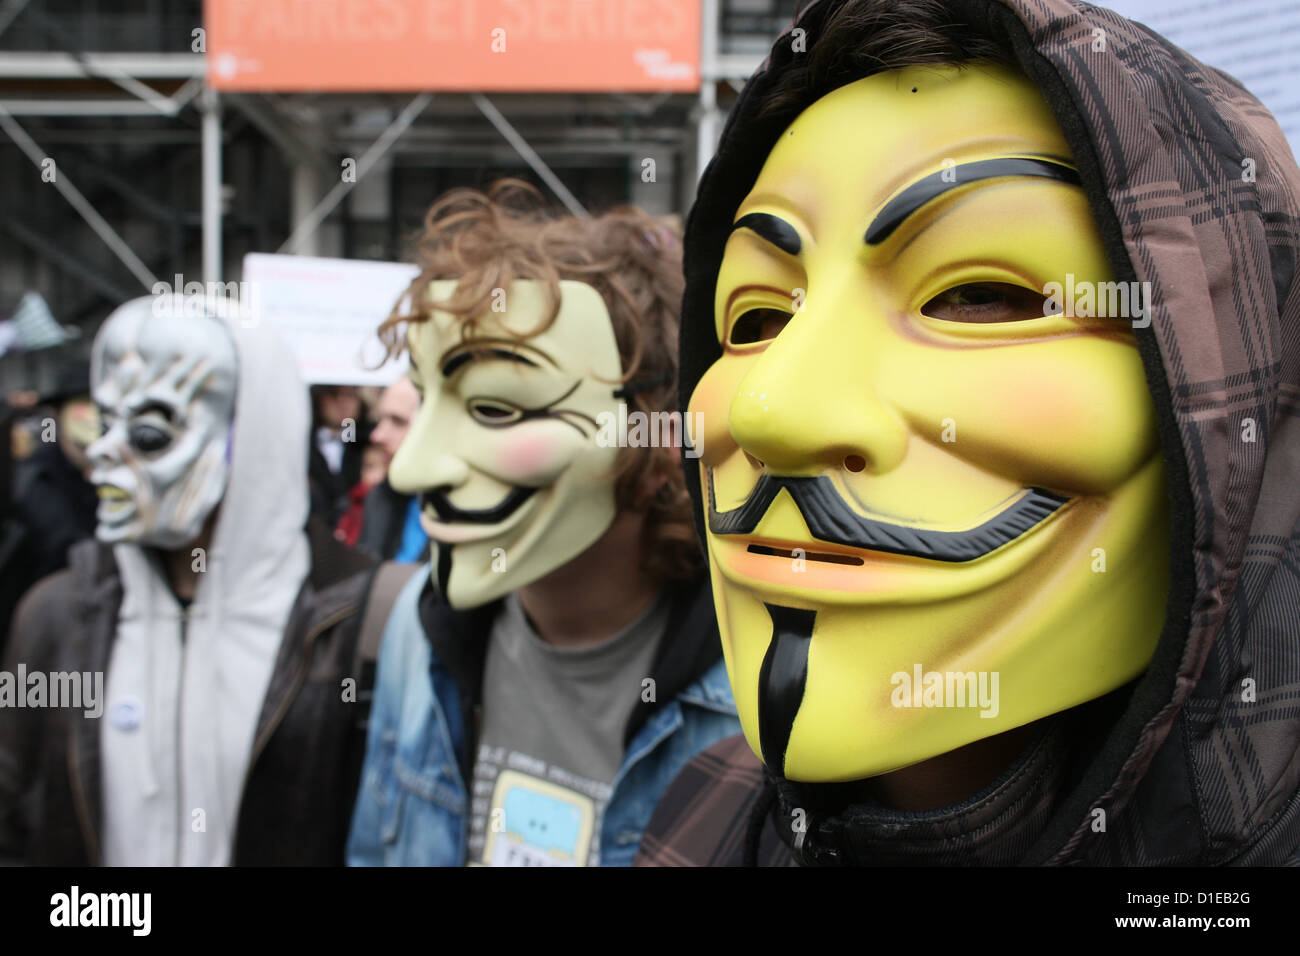 Protestors wearing Guy Fawkes masks of the Anonymous movement, based on a character in the film V for Vendetta, - Stock Image